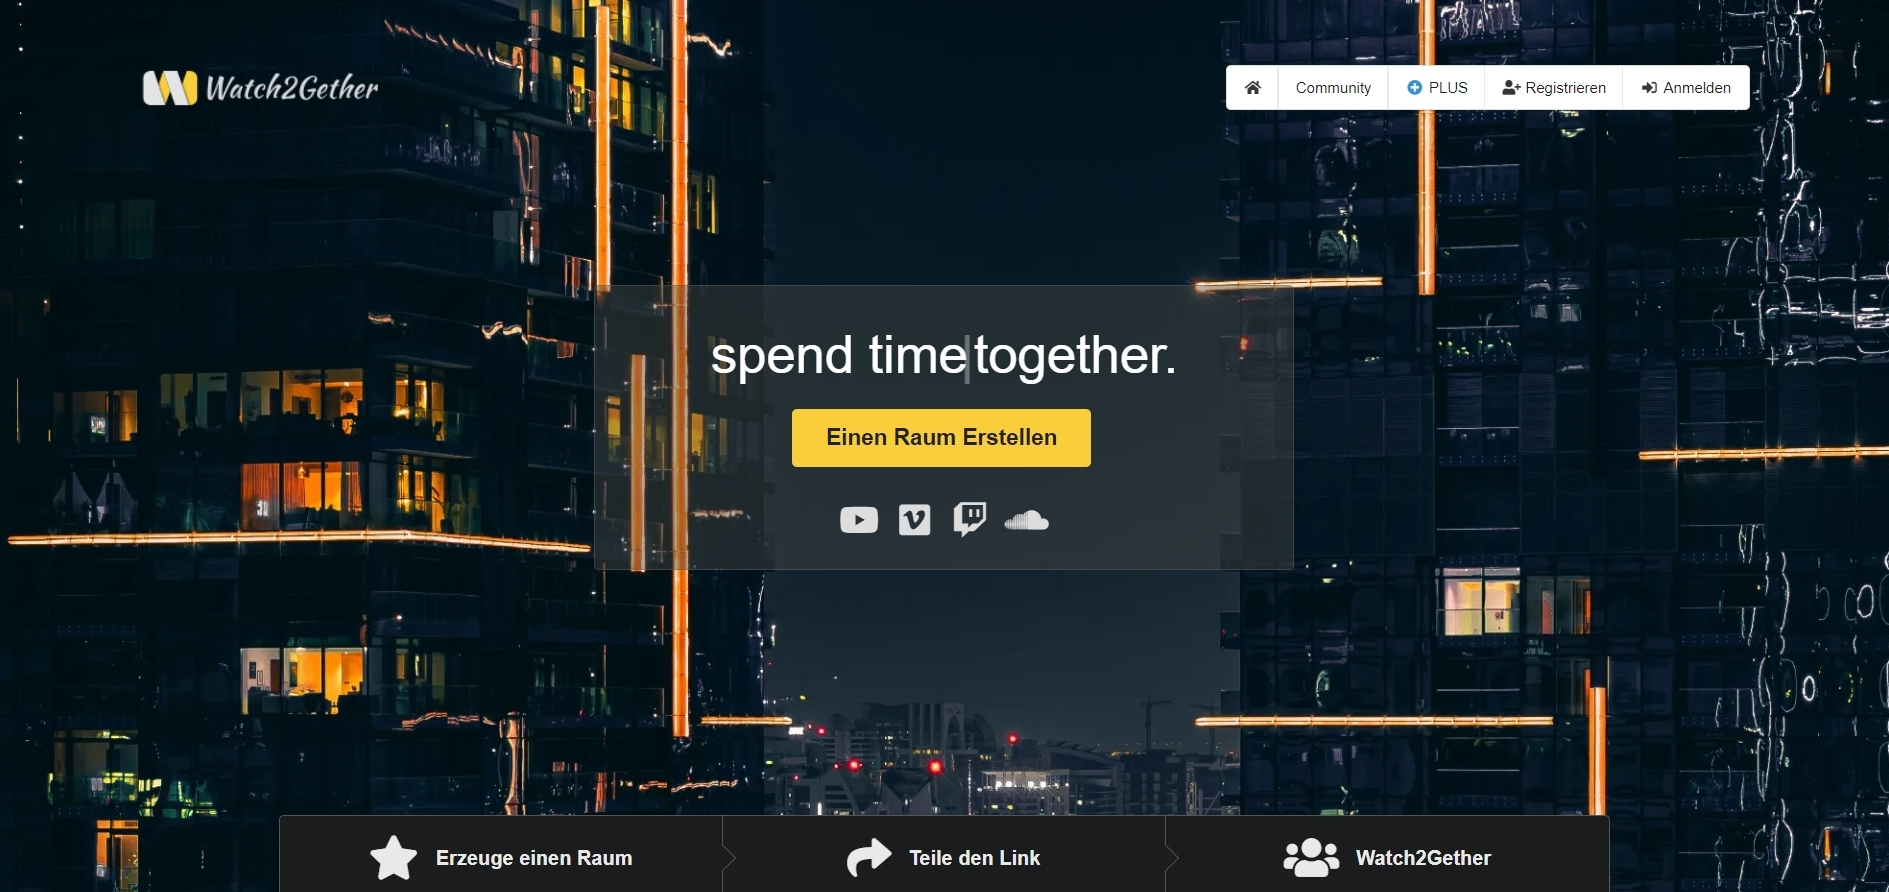 watchtogether / watch2gether Screenshot Website - gemeinsam Videos mit Freunden anschauen